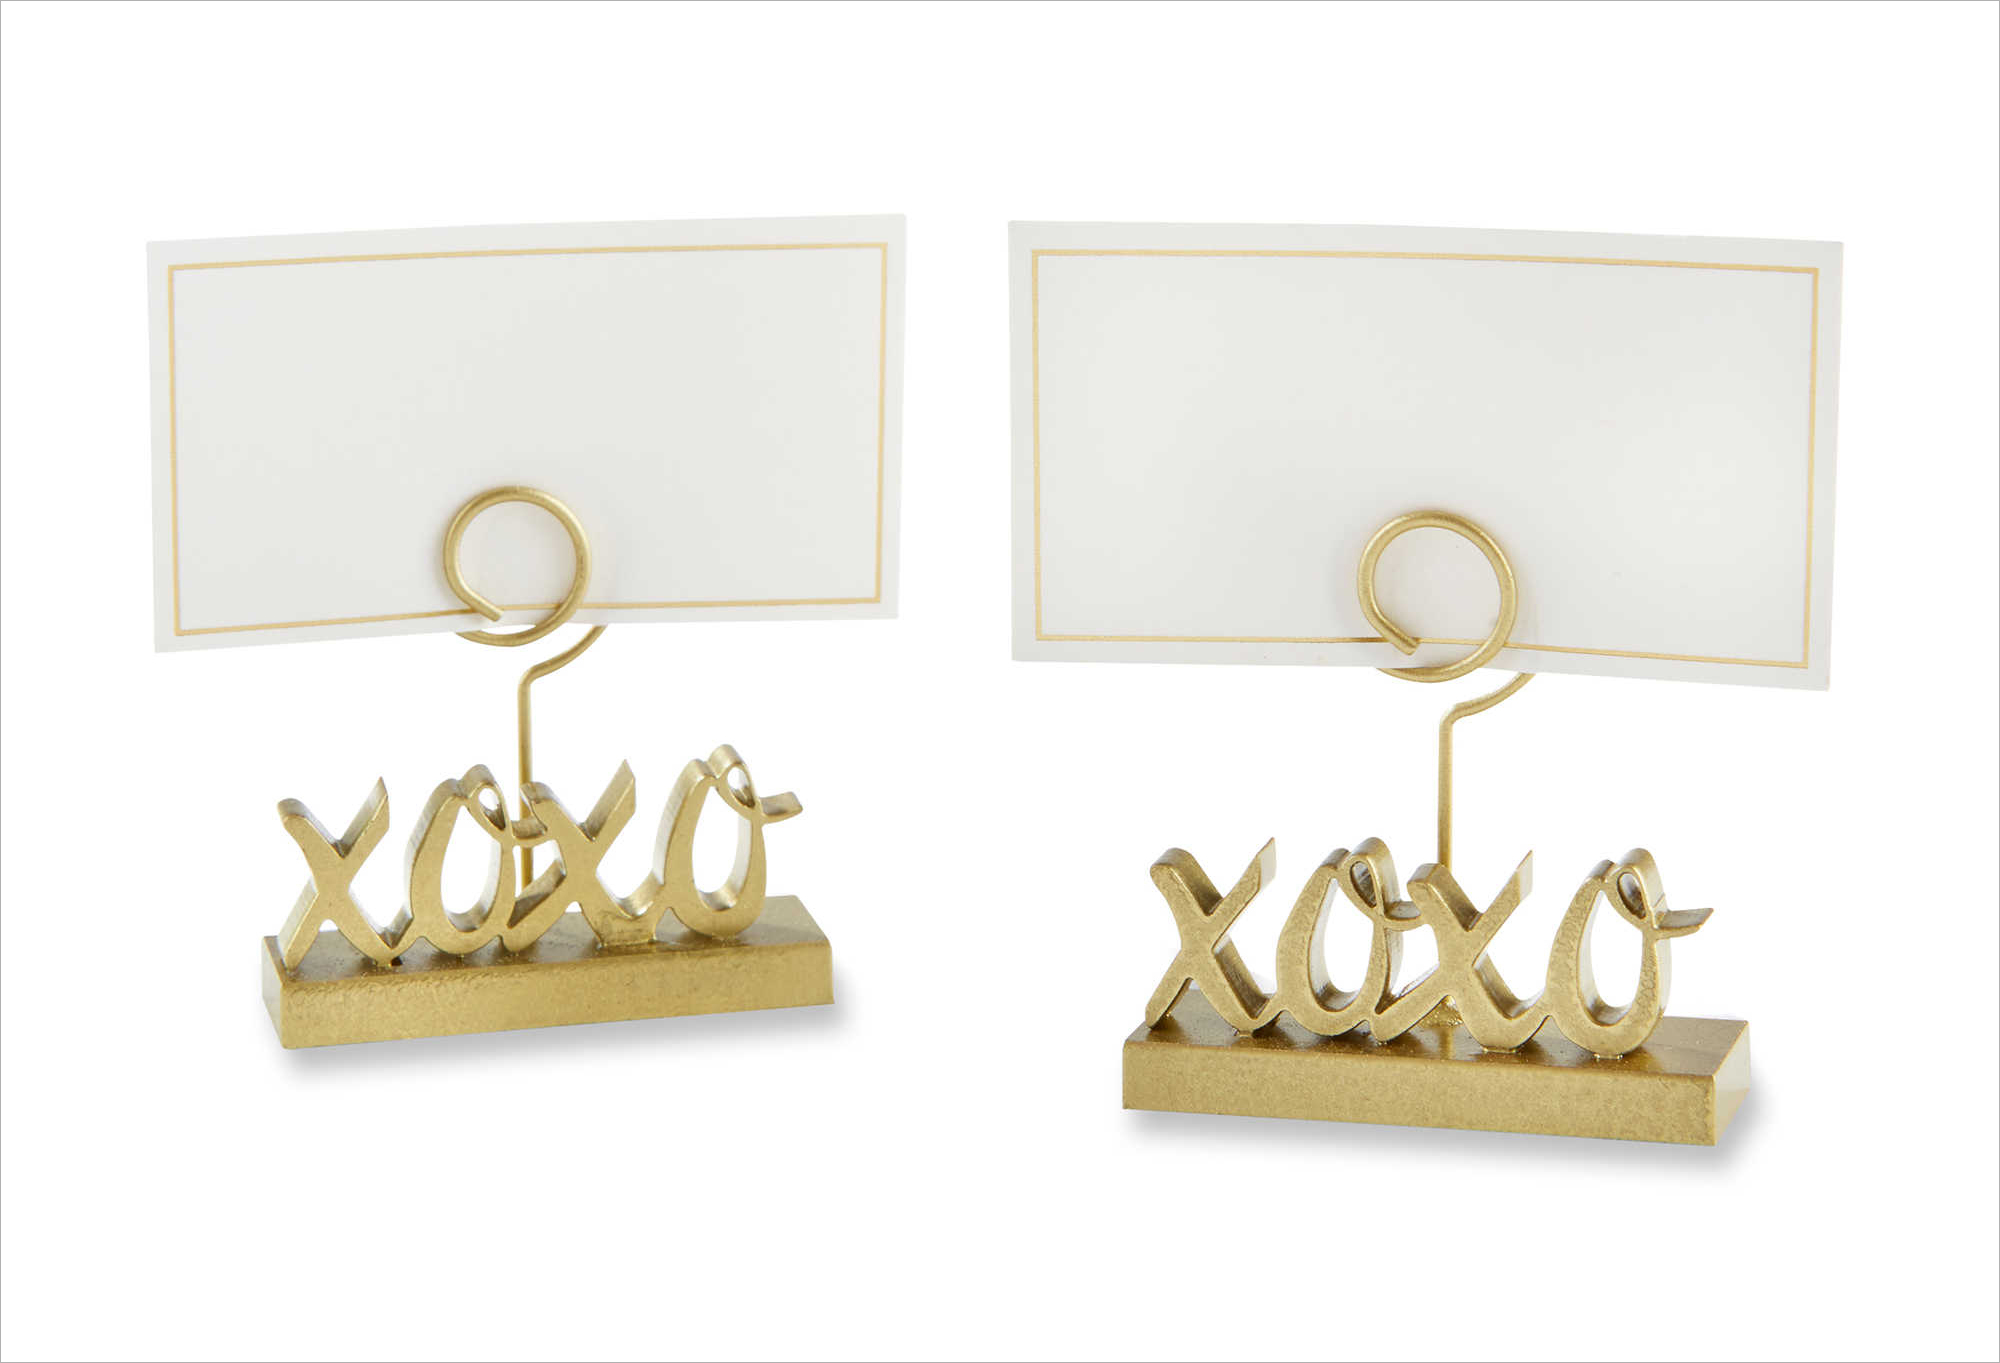 Gold xoxo place card holder bed bath and beyond bachelorette party bridal shower wedding event party accessories ideas